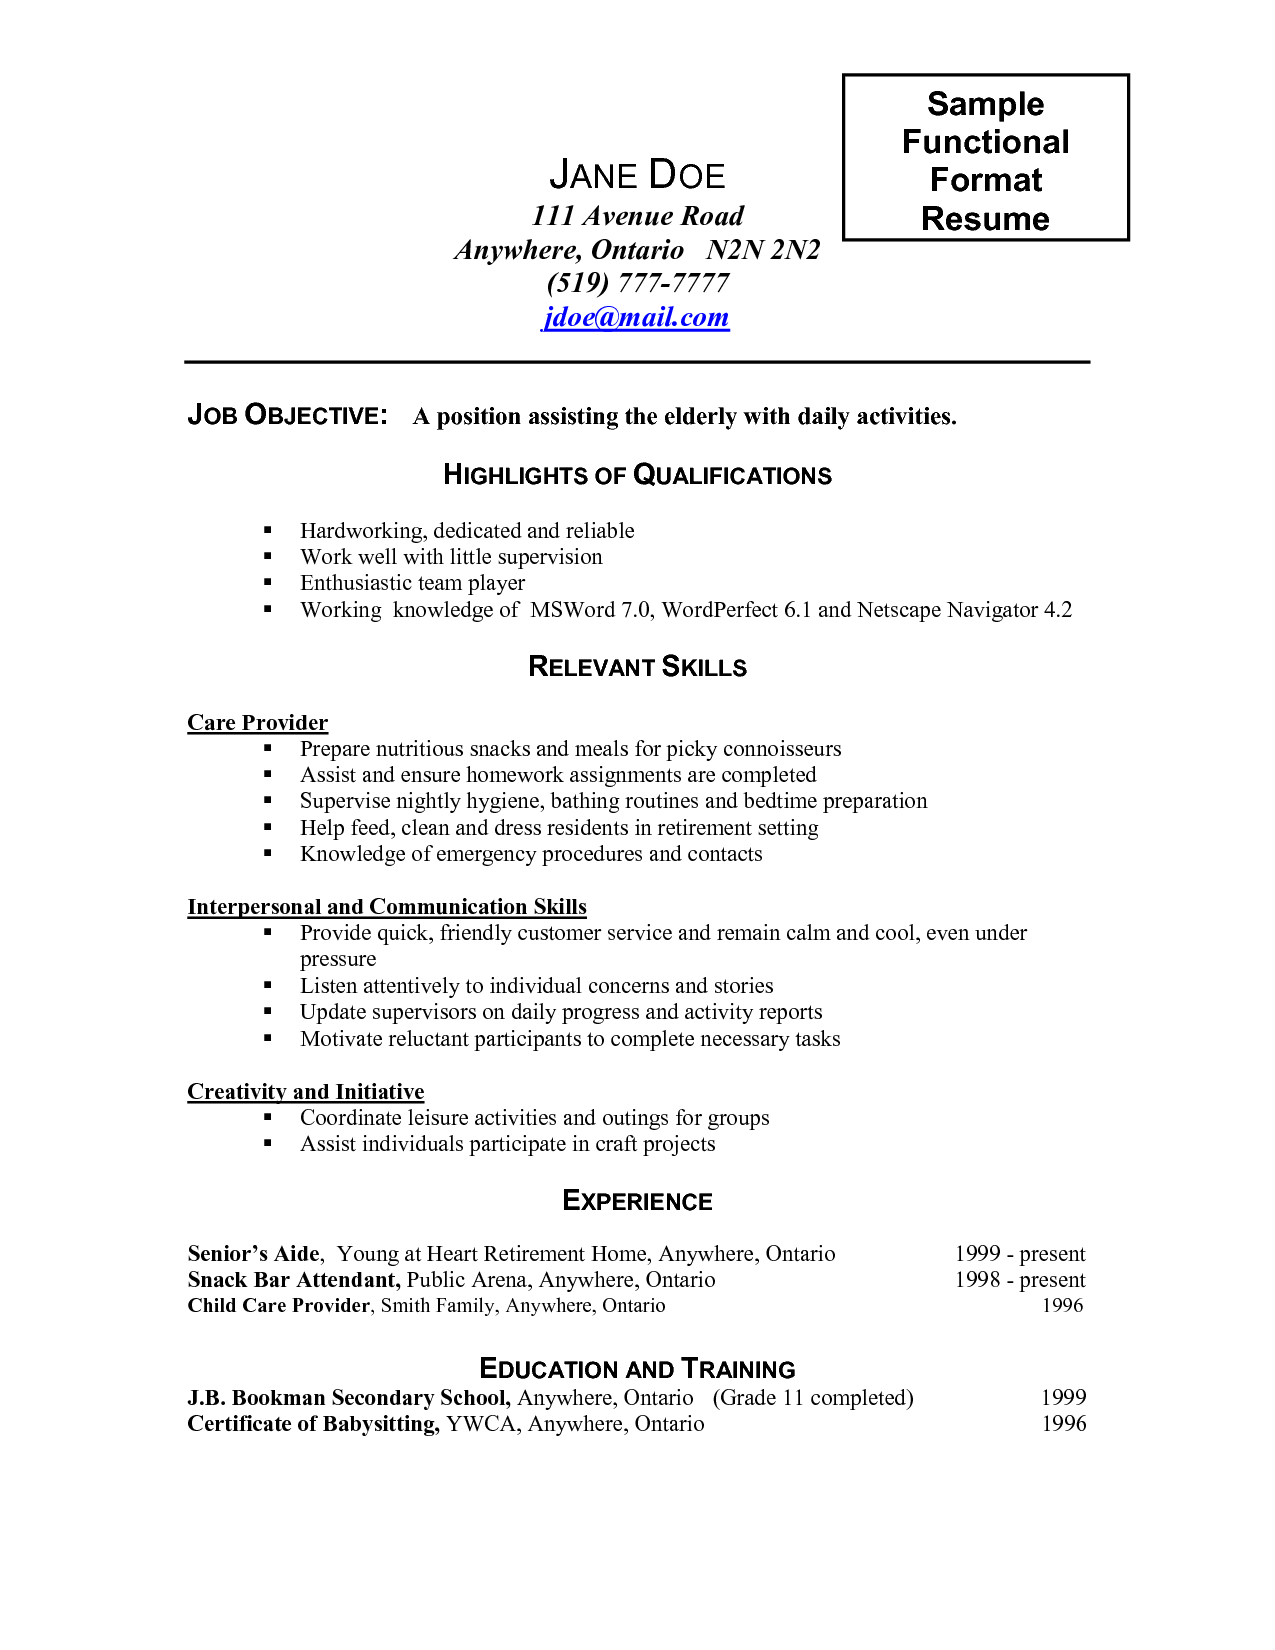 Resume Starbucks Job Description For Resume starbucks resume tips resumewords developerjob1 veterinary technician cover